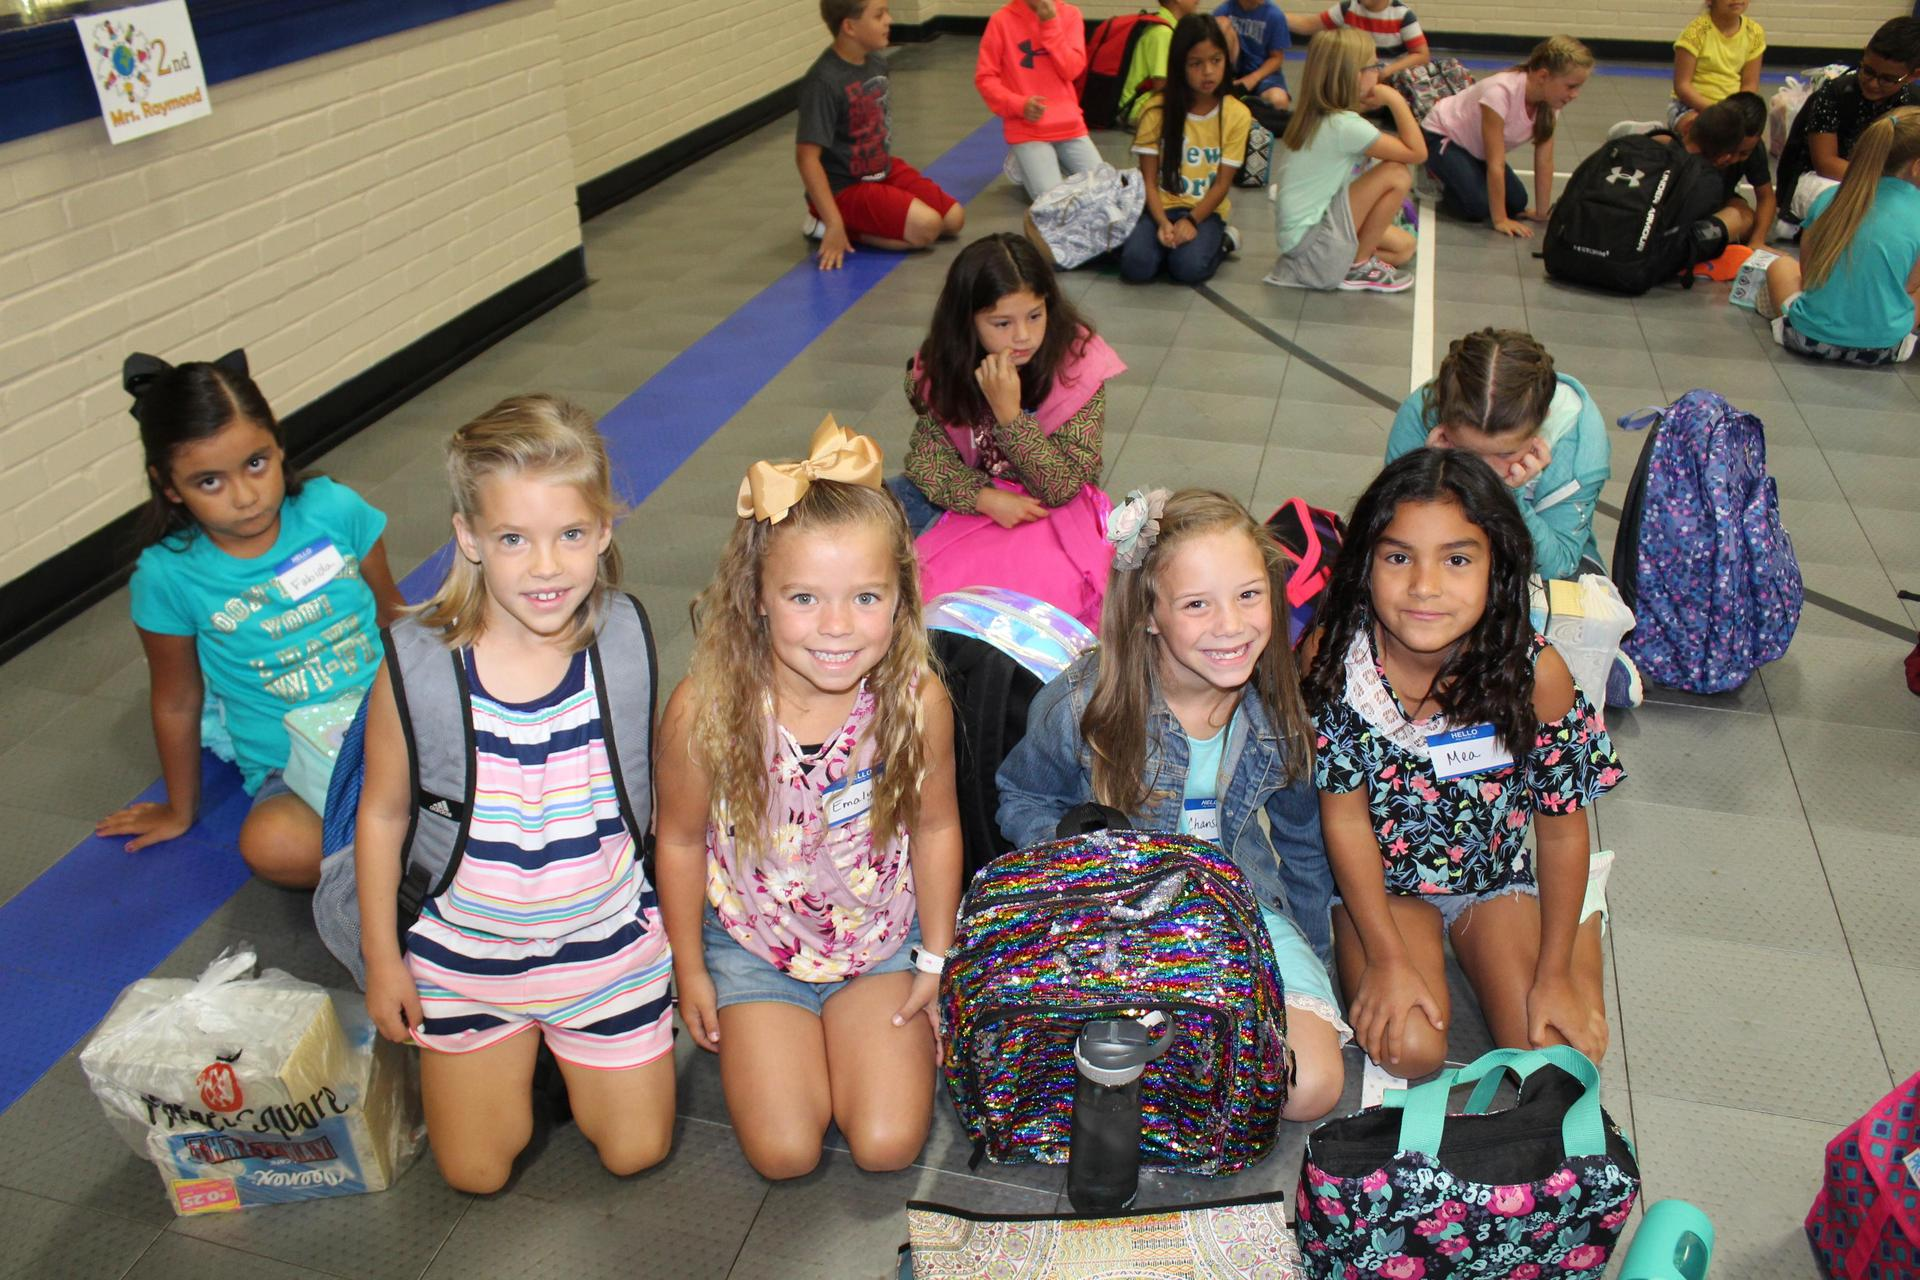 Students ready for a new year of school